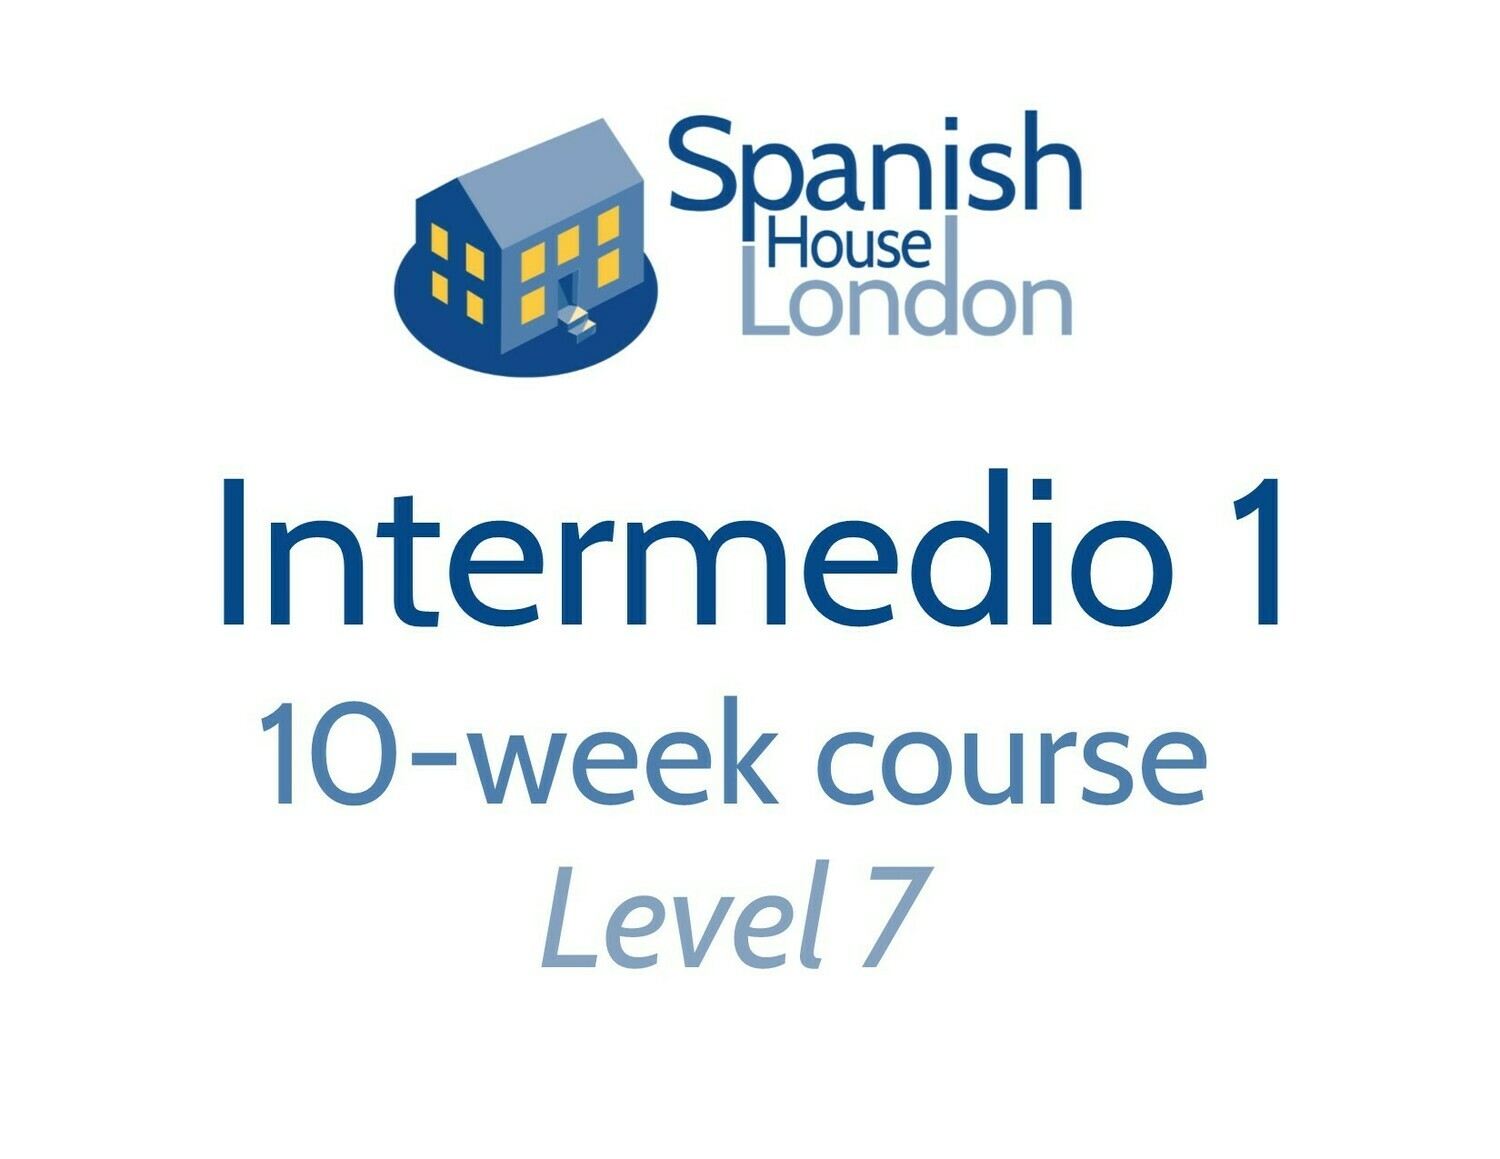 Intermedio 1 Course starting on 11th January at 6pm